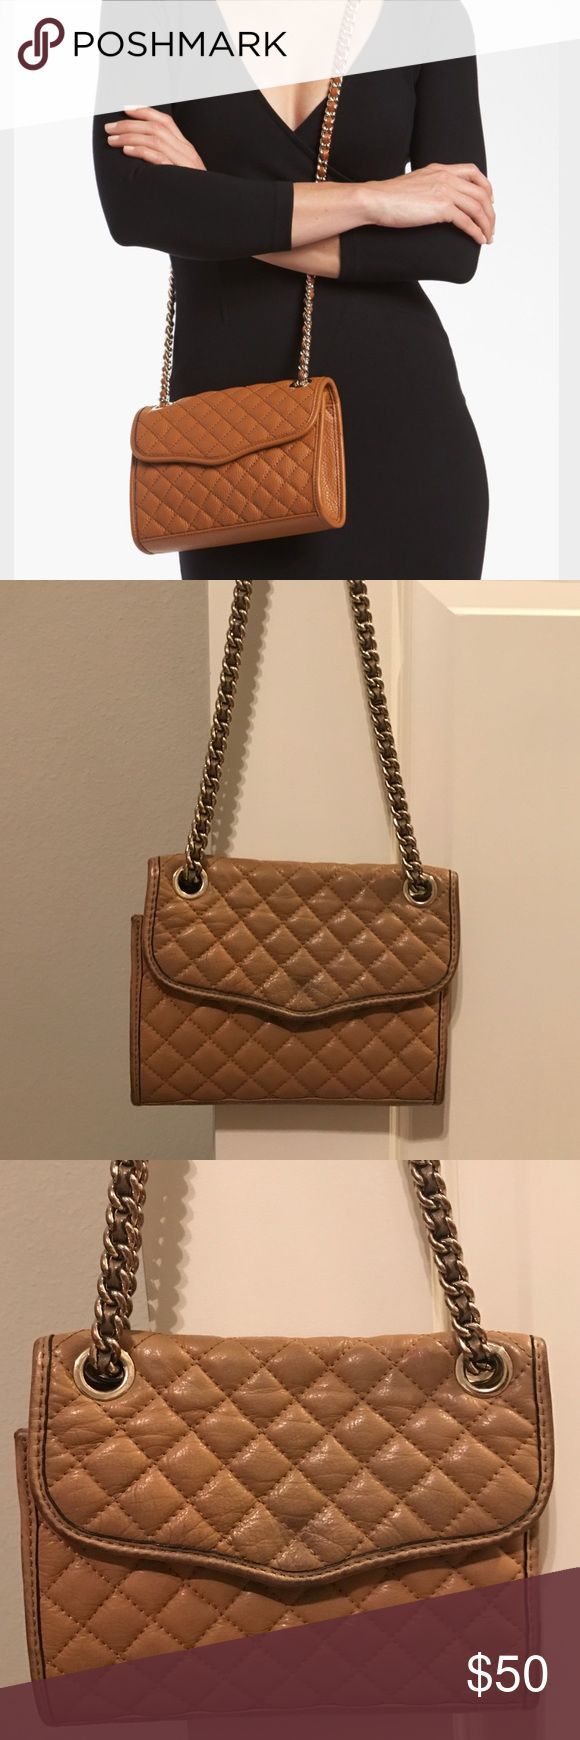 Rebecca Minkoff tan quilted mini affair purse Rebecca Minkoff tan quilted mini affair purse. Some discoloring and wear- visible in picture Rebecca Minkoff Bags Crossbody Bags